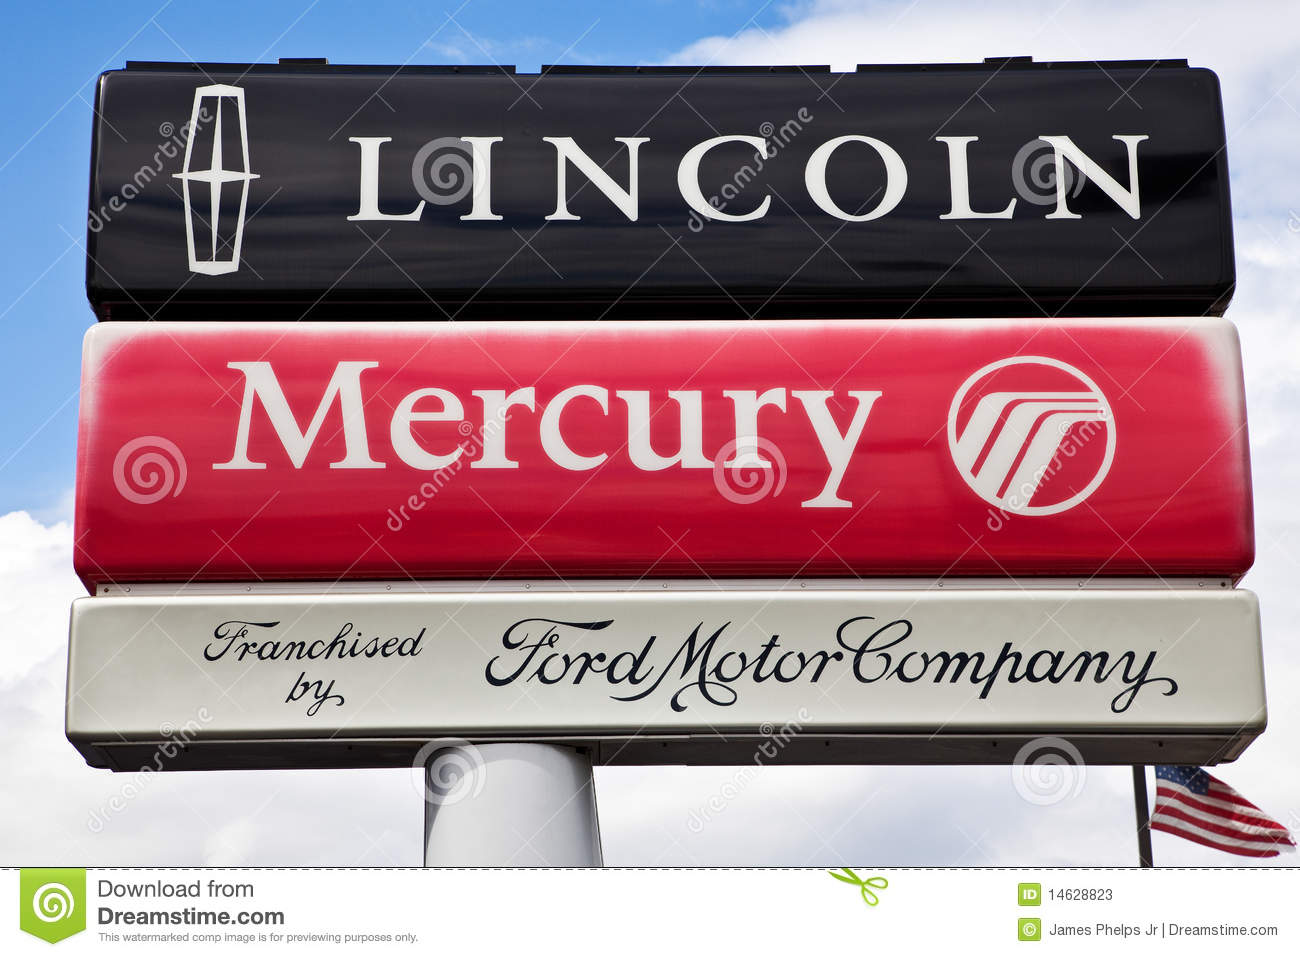 Ford lincoln mercury dealership sign editorial stock photo for Ford motor company credit card